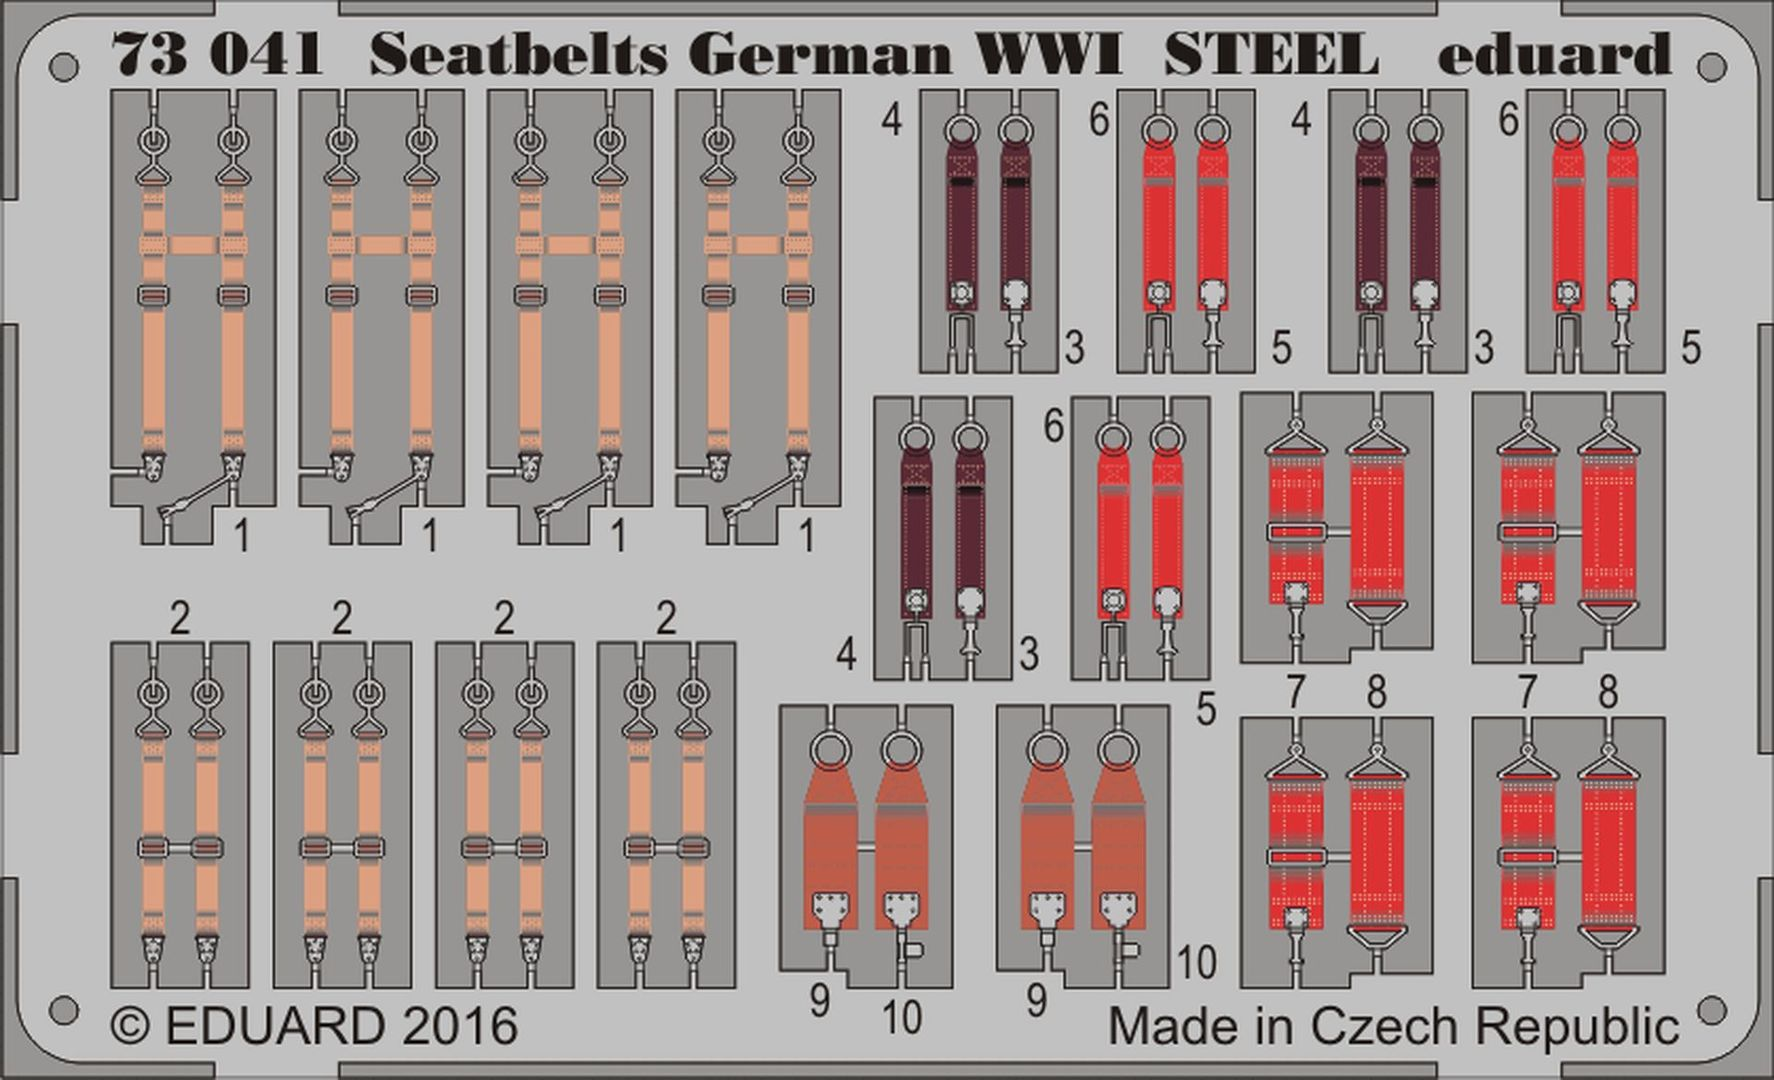 Steel, 1 Photo-Etched Sheet Eduard Models 1//48 WWII Italy Fighters Seatbelts